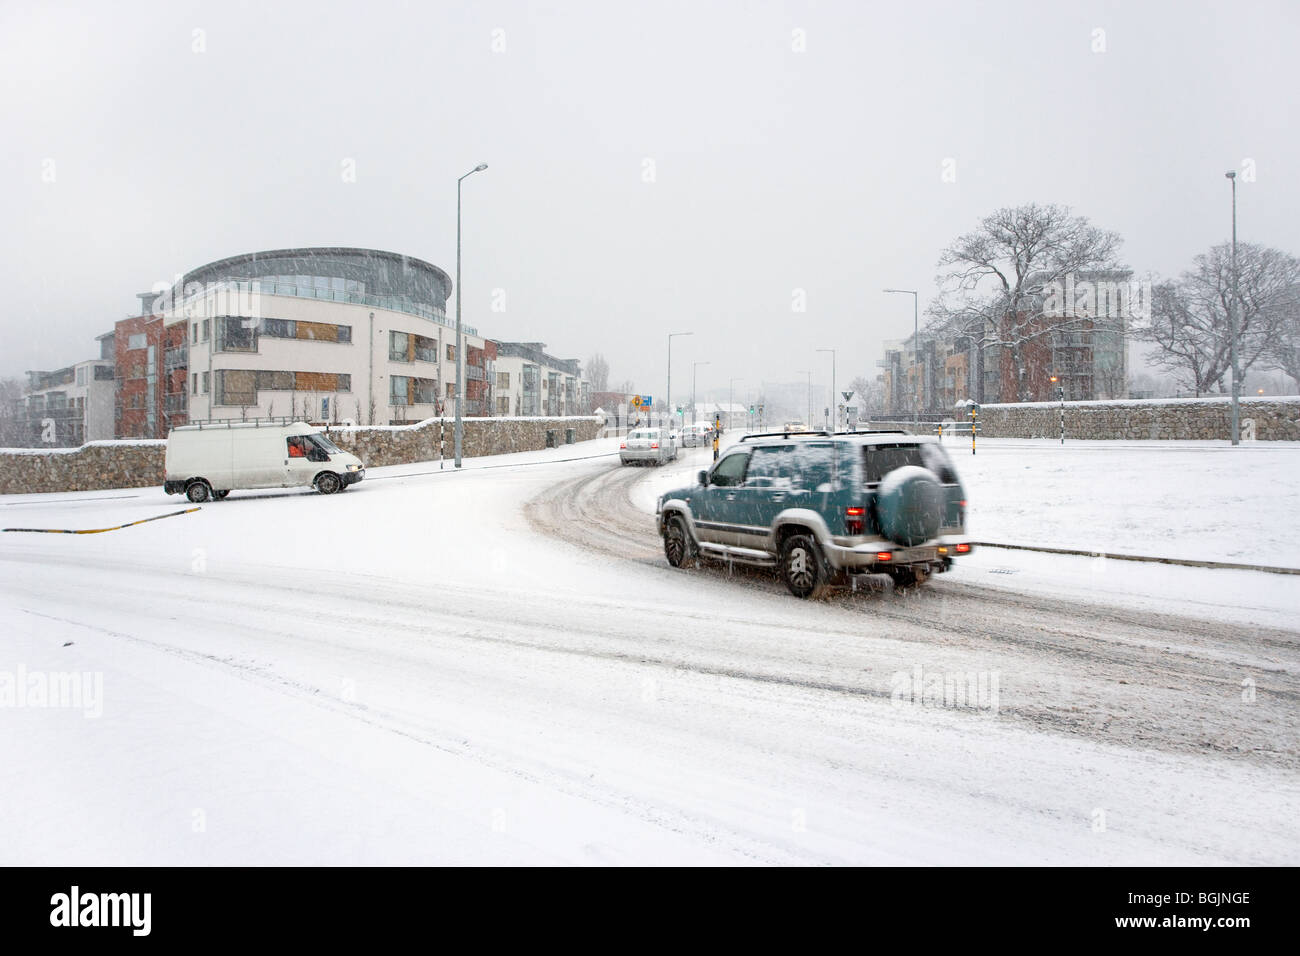 snow,winter,wet,cold,freeze,big freeze,ice,weather,stormy,snowing - Stock Image